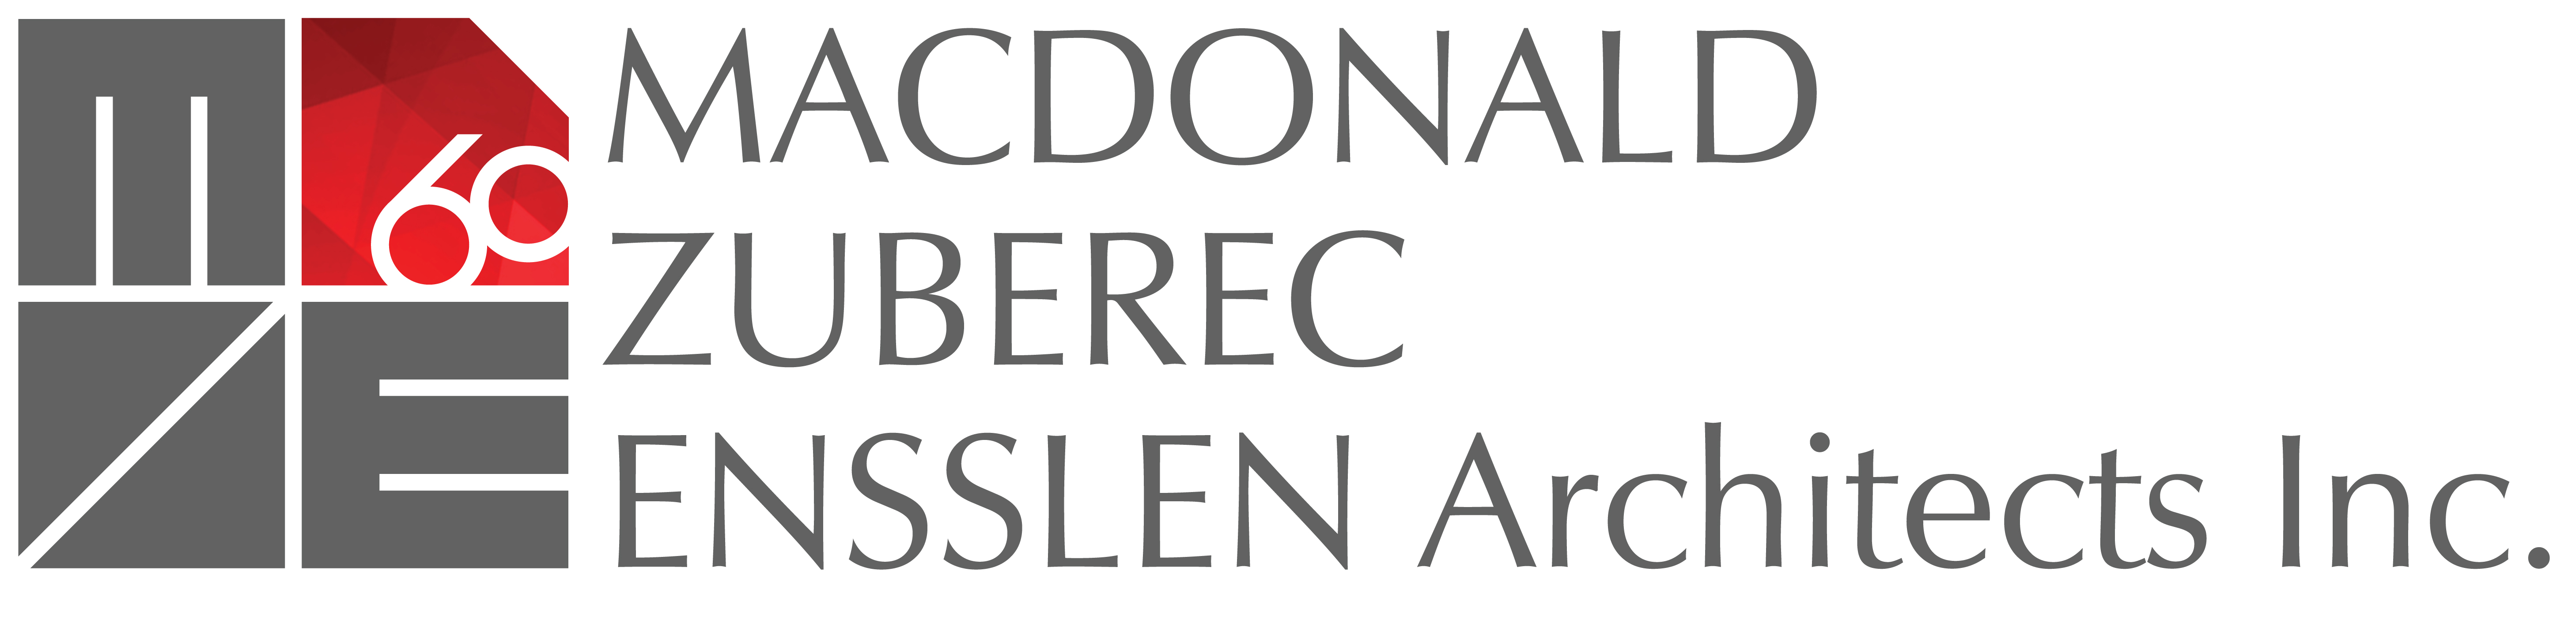 MacDonald Zuberec Ensslen Architects Inc.